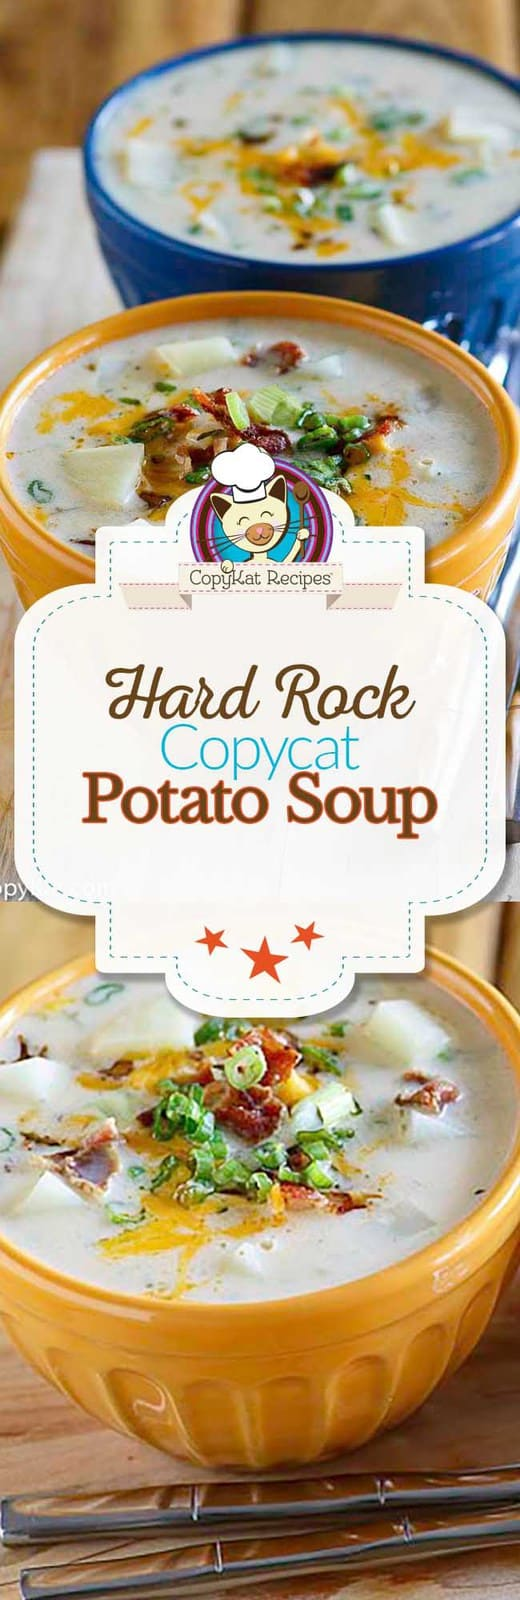 You can recreate the Hard Rock Cafe Potato Soup at home with this easy copycat recipe. #potatosoup #potato #soup #copycat #copycatrecipe